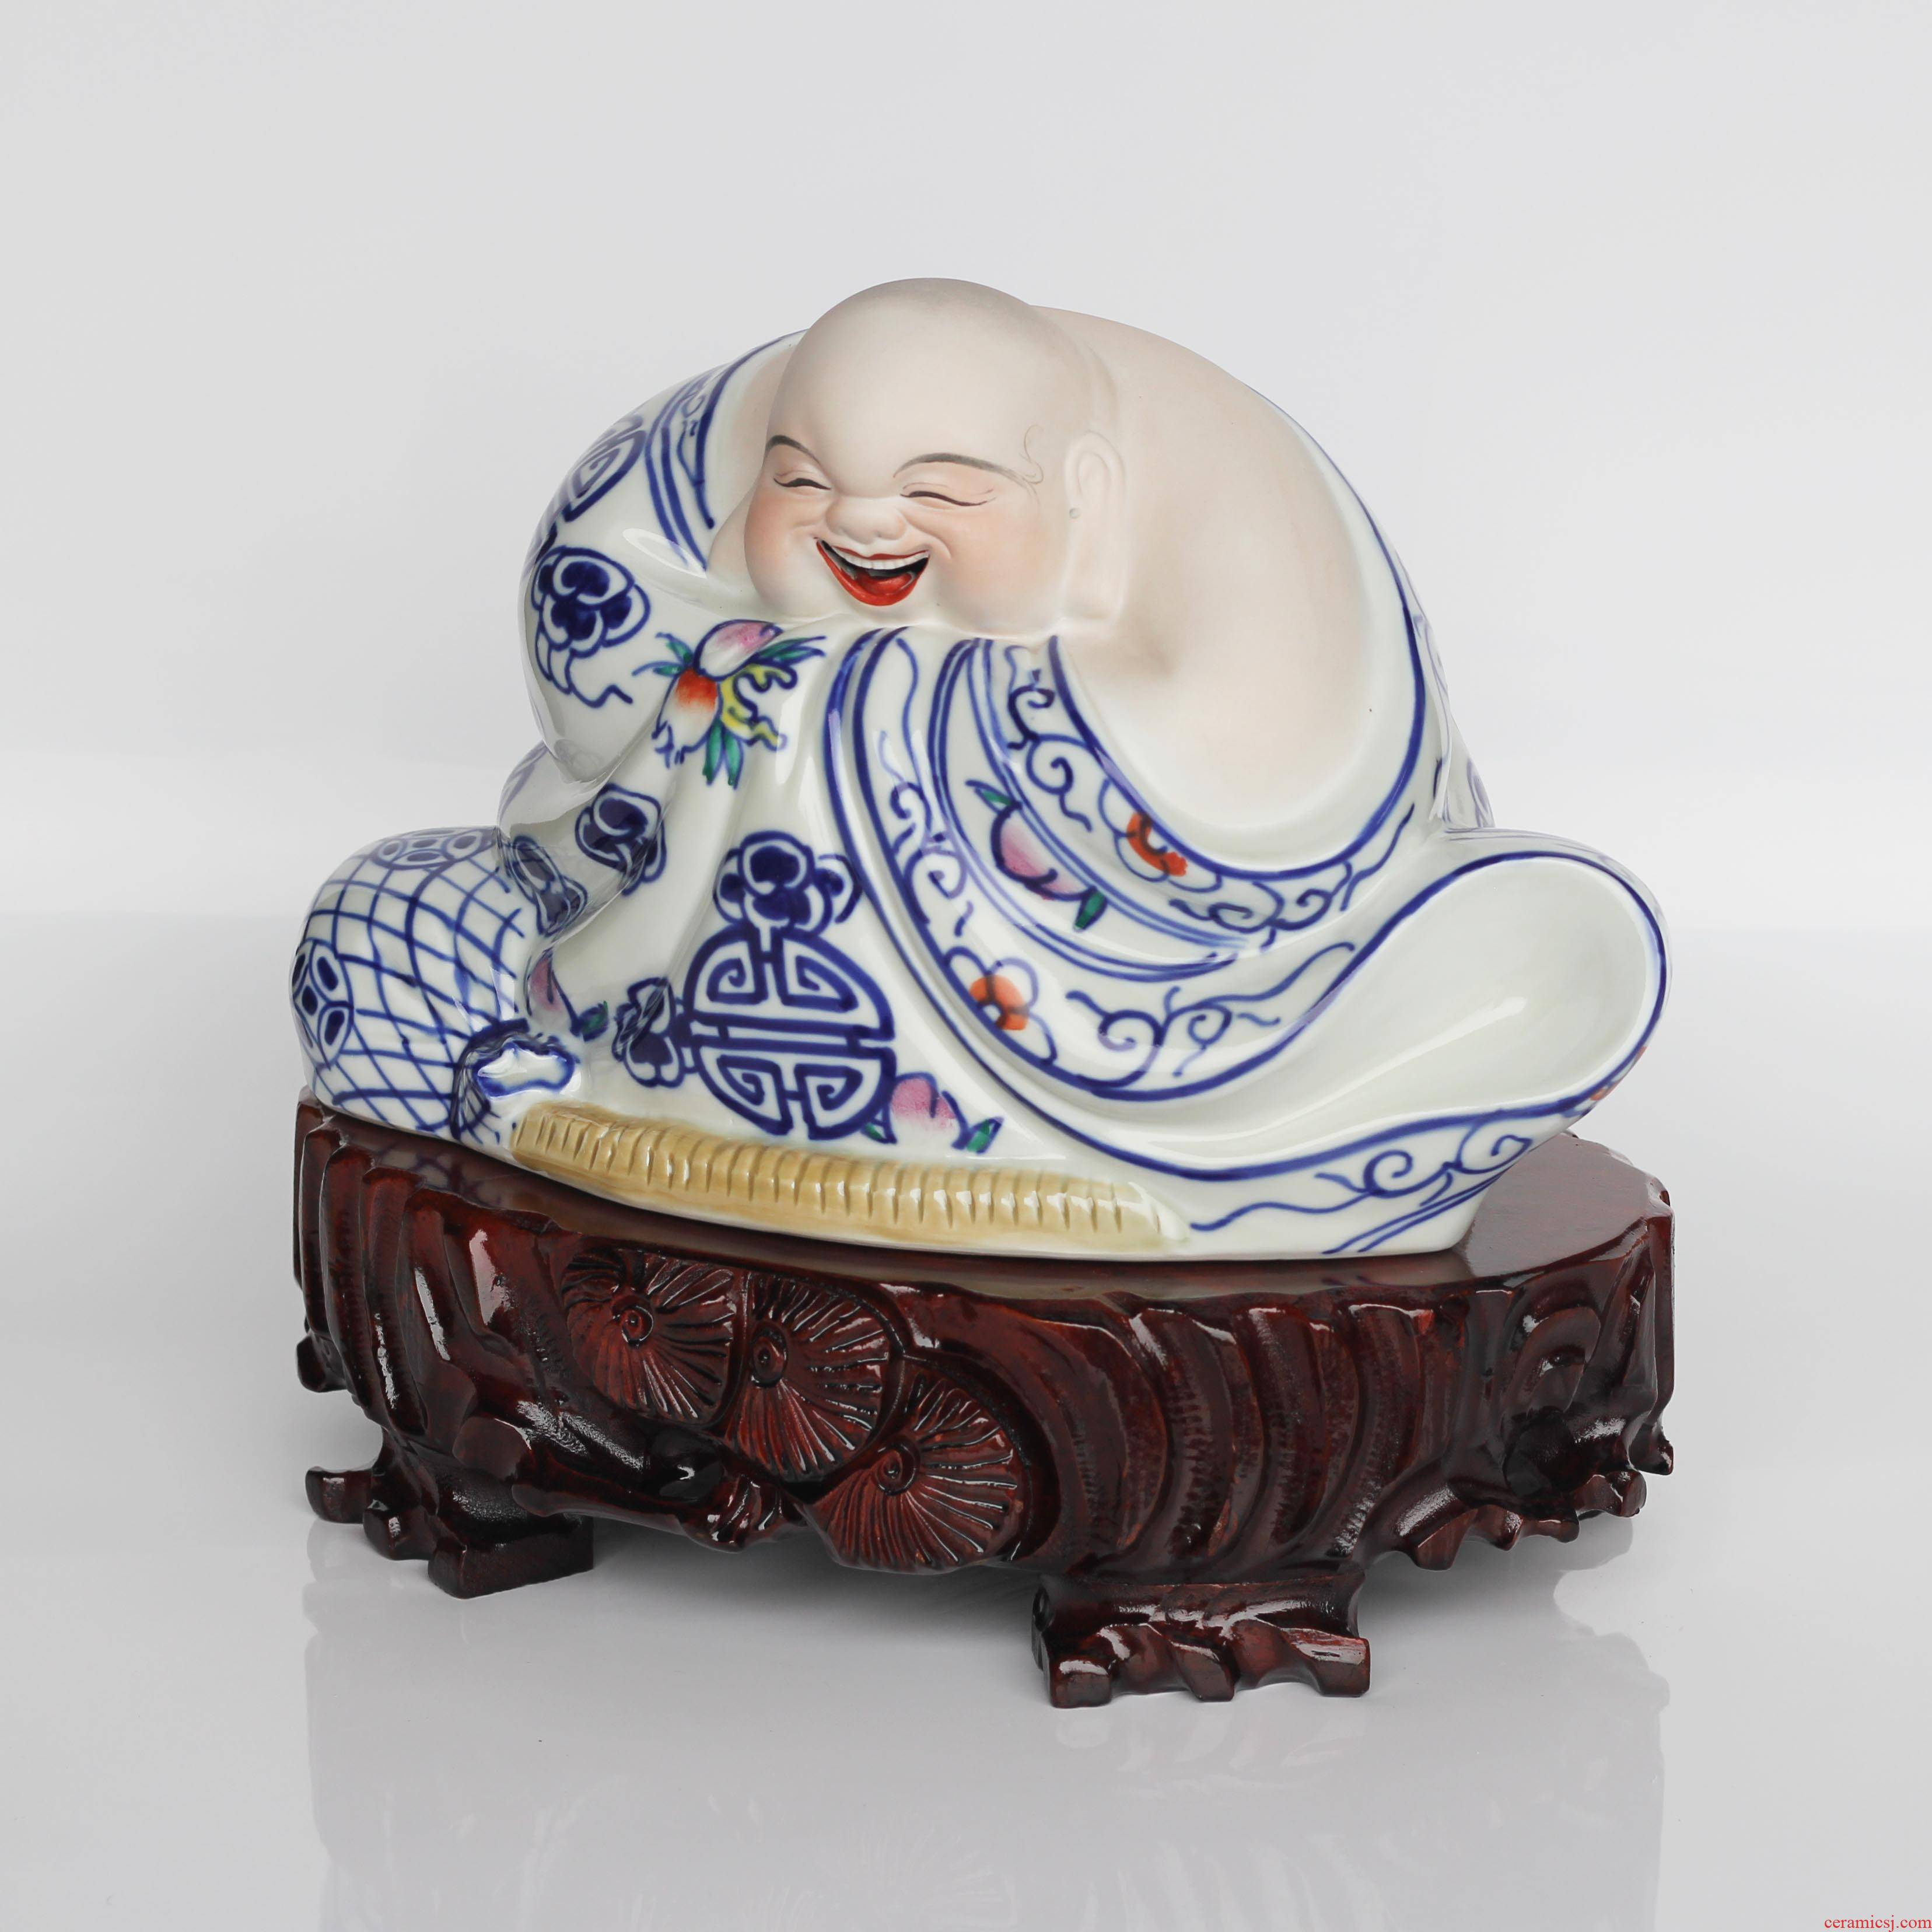 Real wood the oval stone base root carving wood carving jade bonsai Buddha base can be customized can be excavated